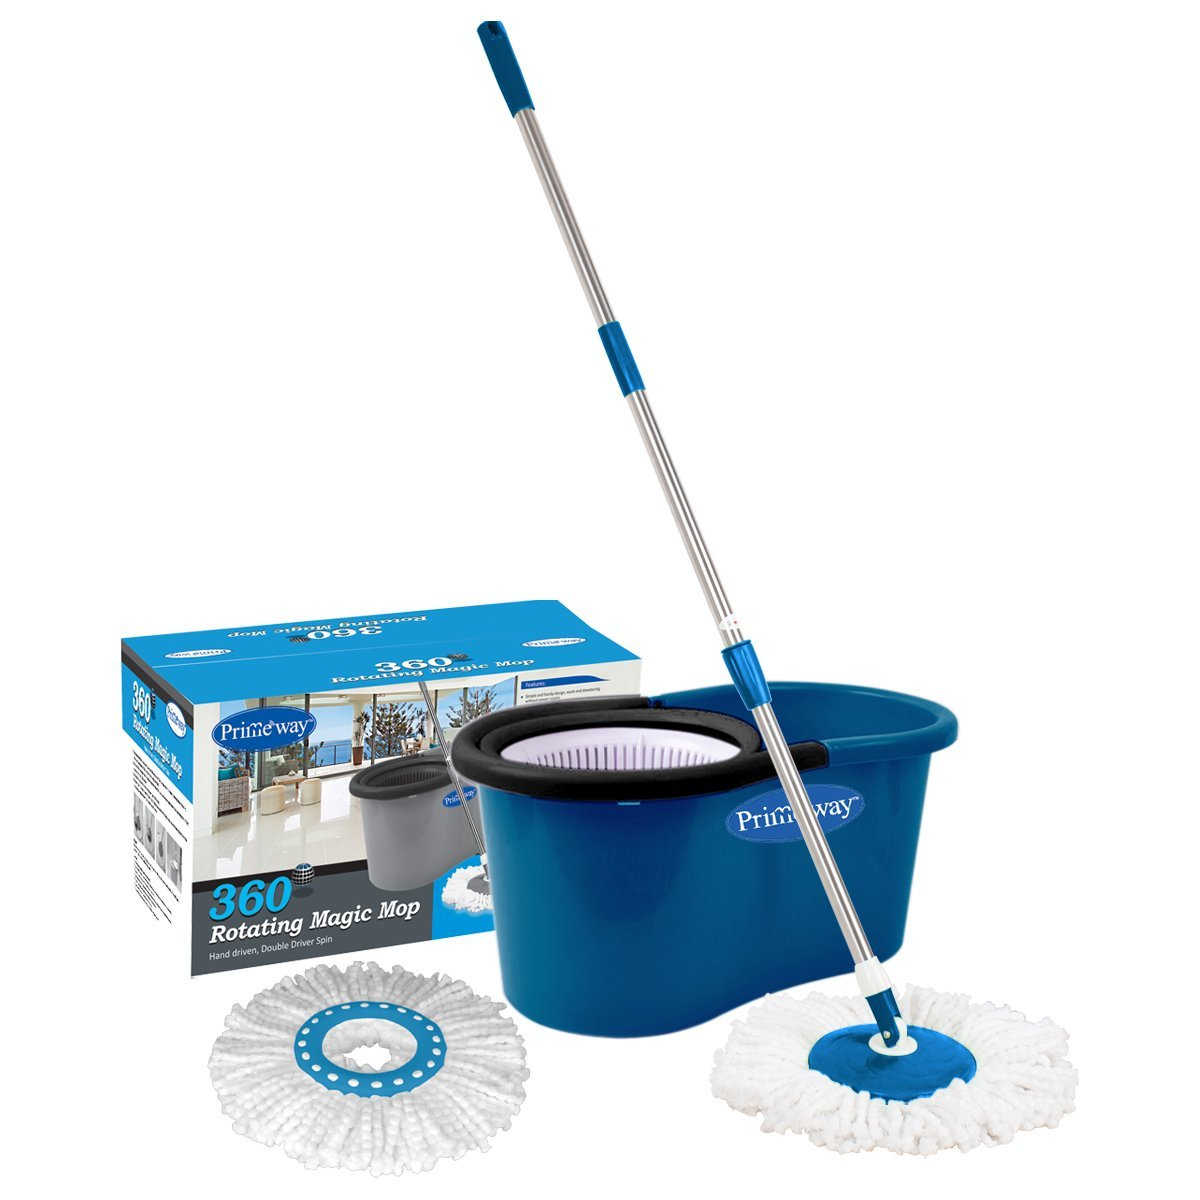 Primeway Pw266Me Double Driver Economy 360 Rotating Magic Mop and Bucket with 2 Microfibre Mop Heads (Dark Blue)